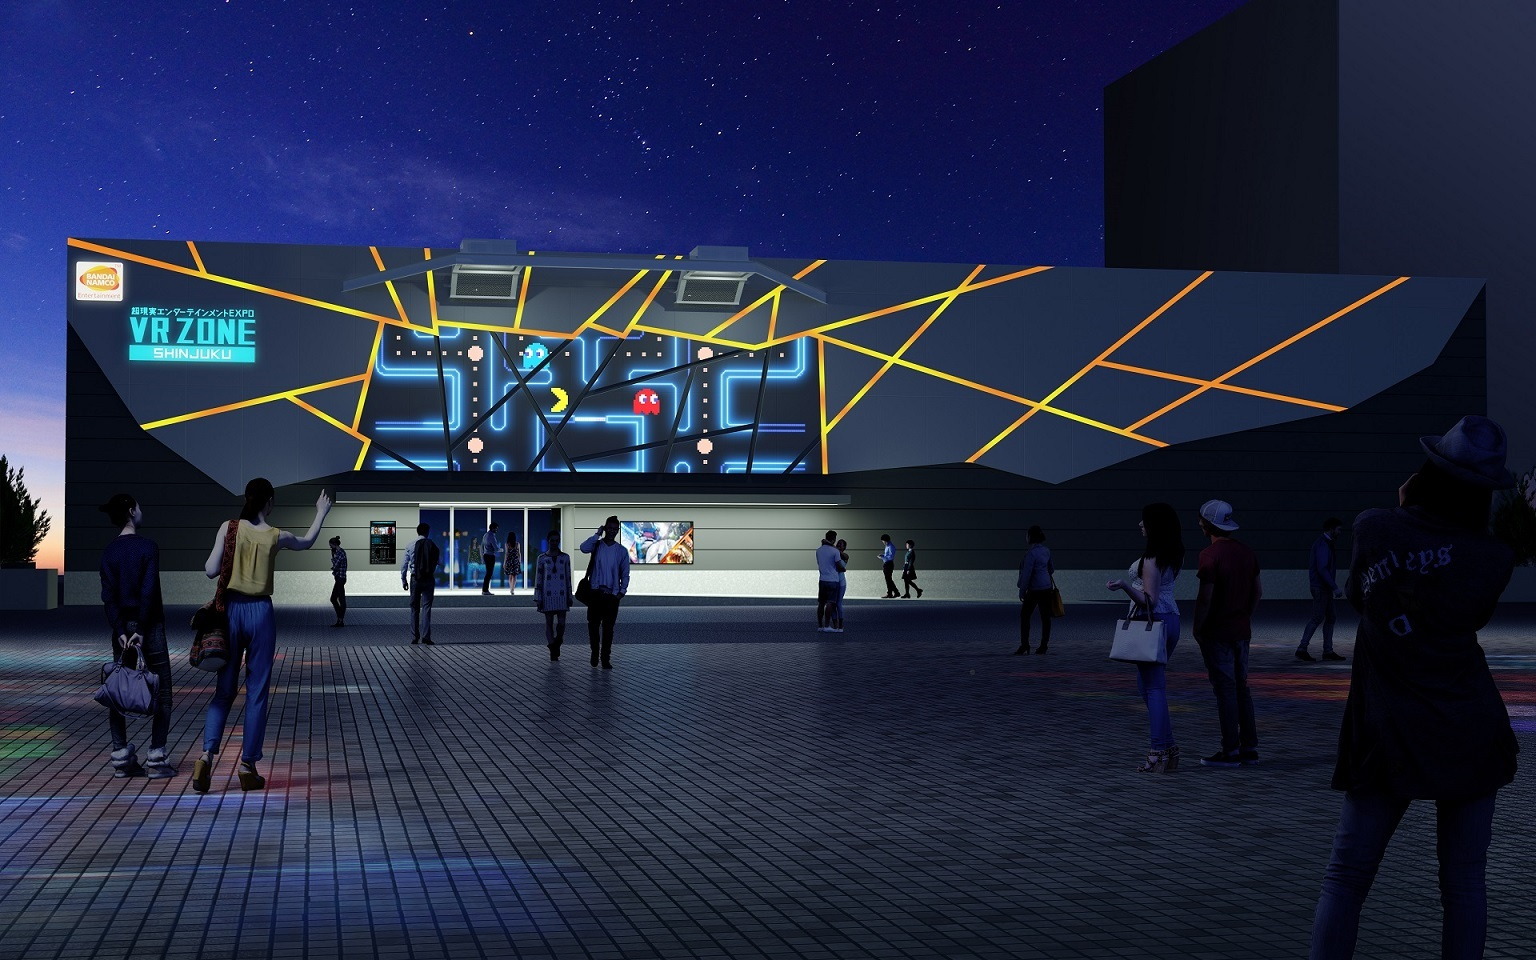 """VR ZONE SHINJUKU"" Facility Exterior Image (Photo: Business Wire)"